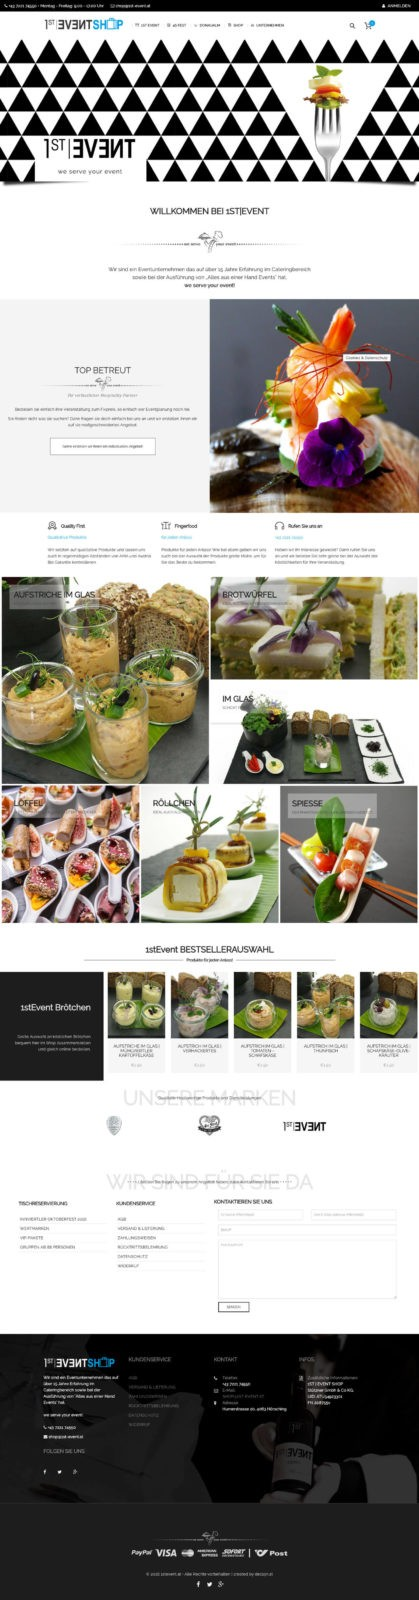 Webdesign 1stevent Catering